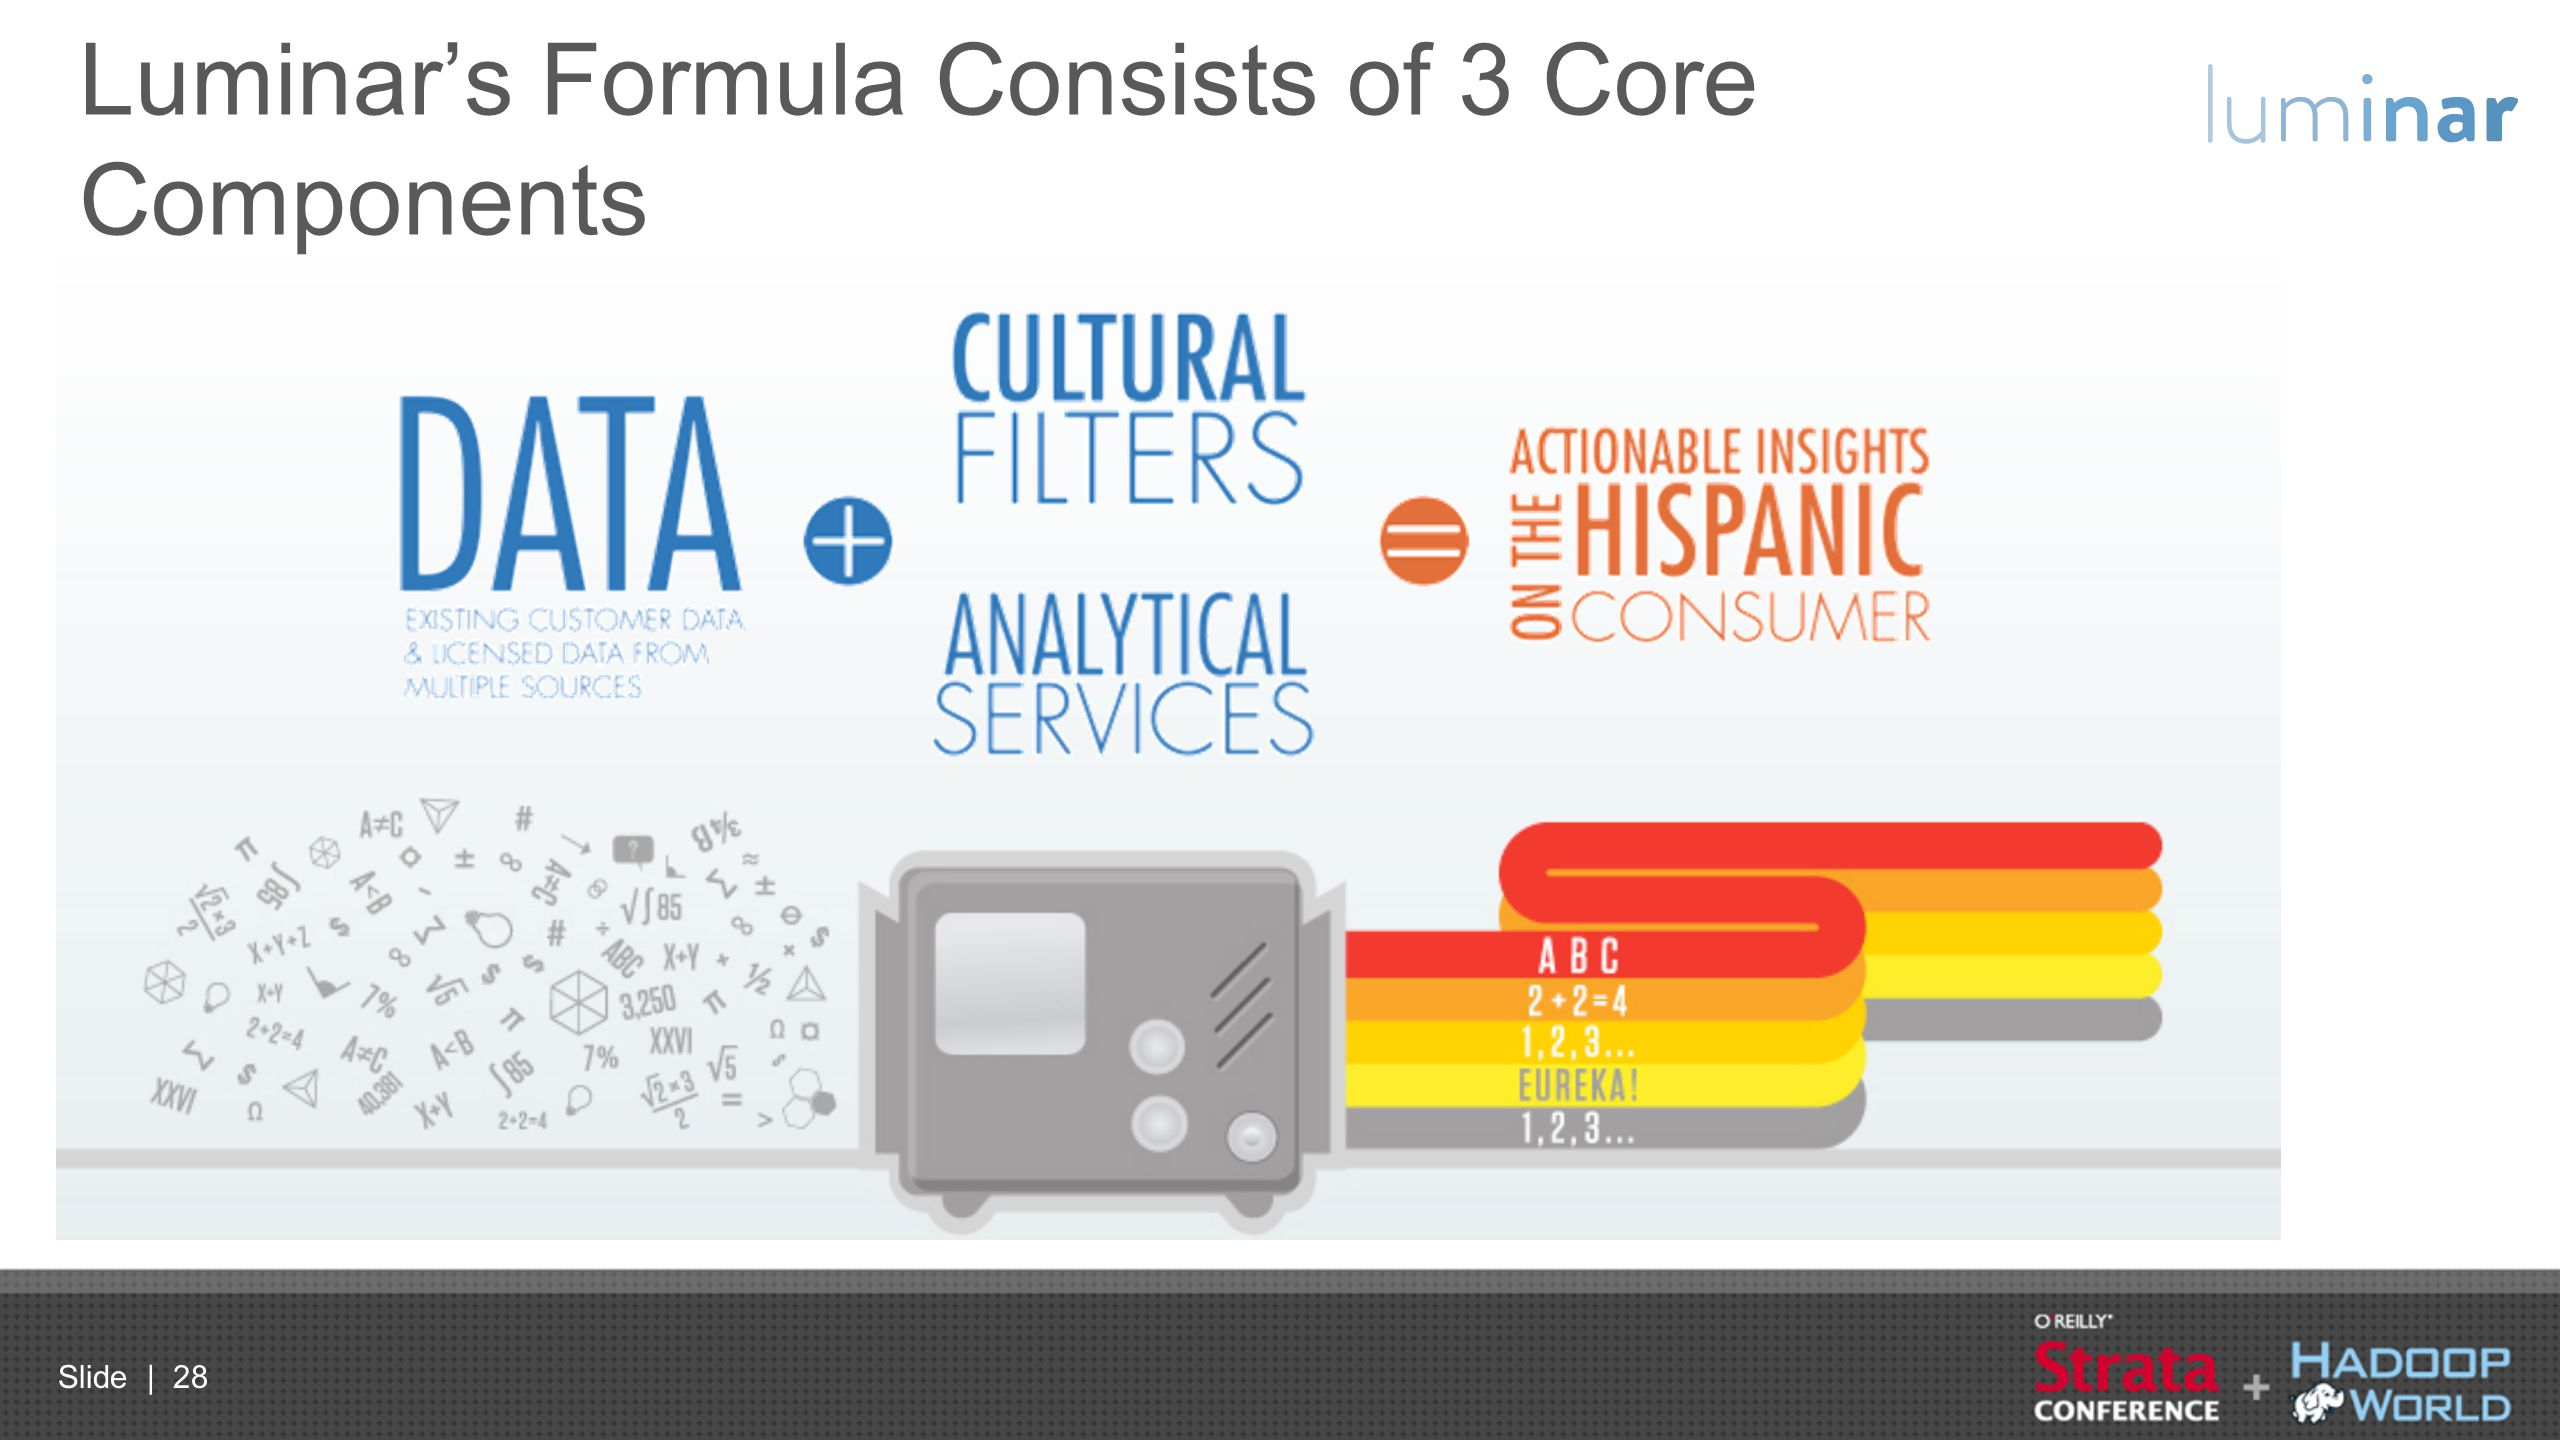 Luminar's Formula Consists of 3 Core Components